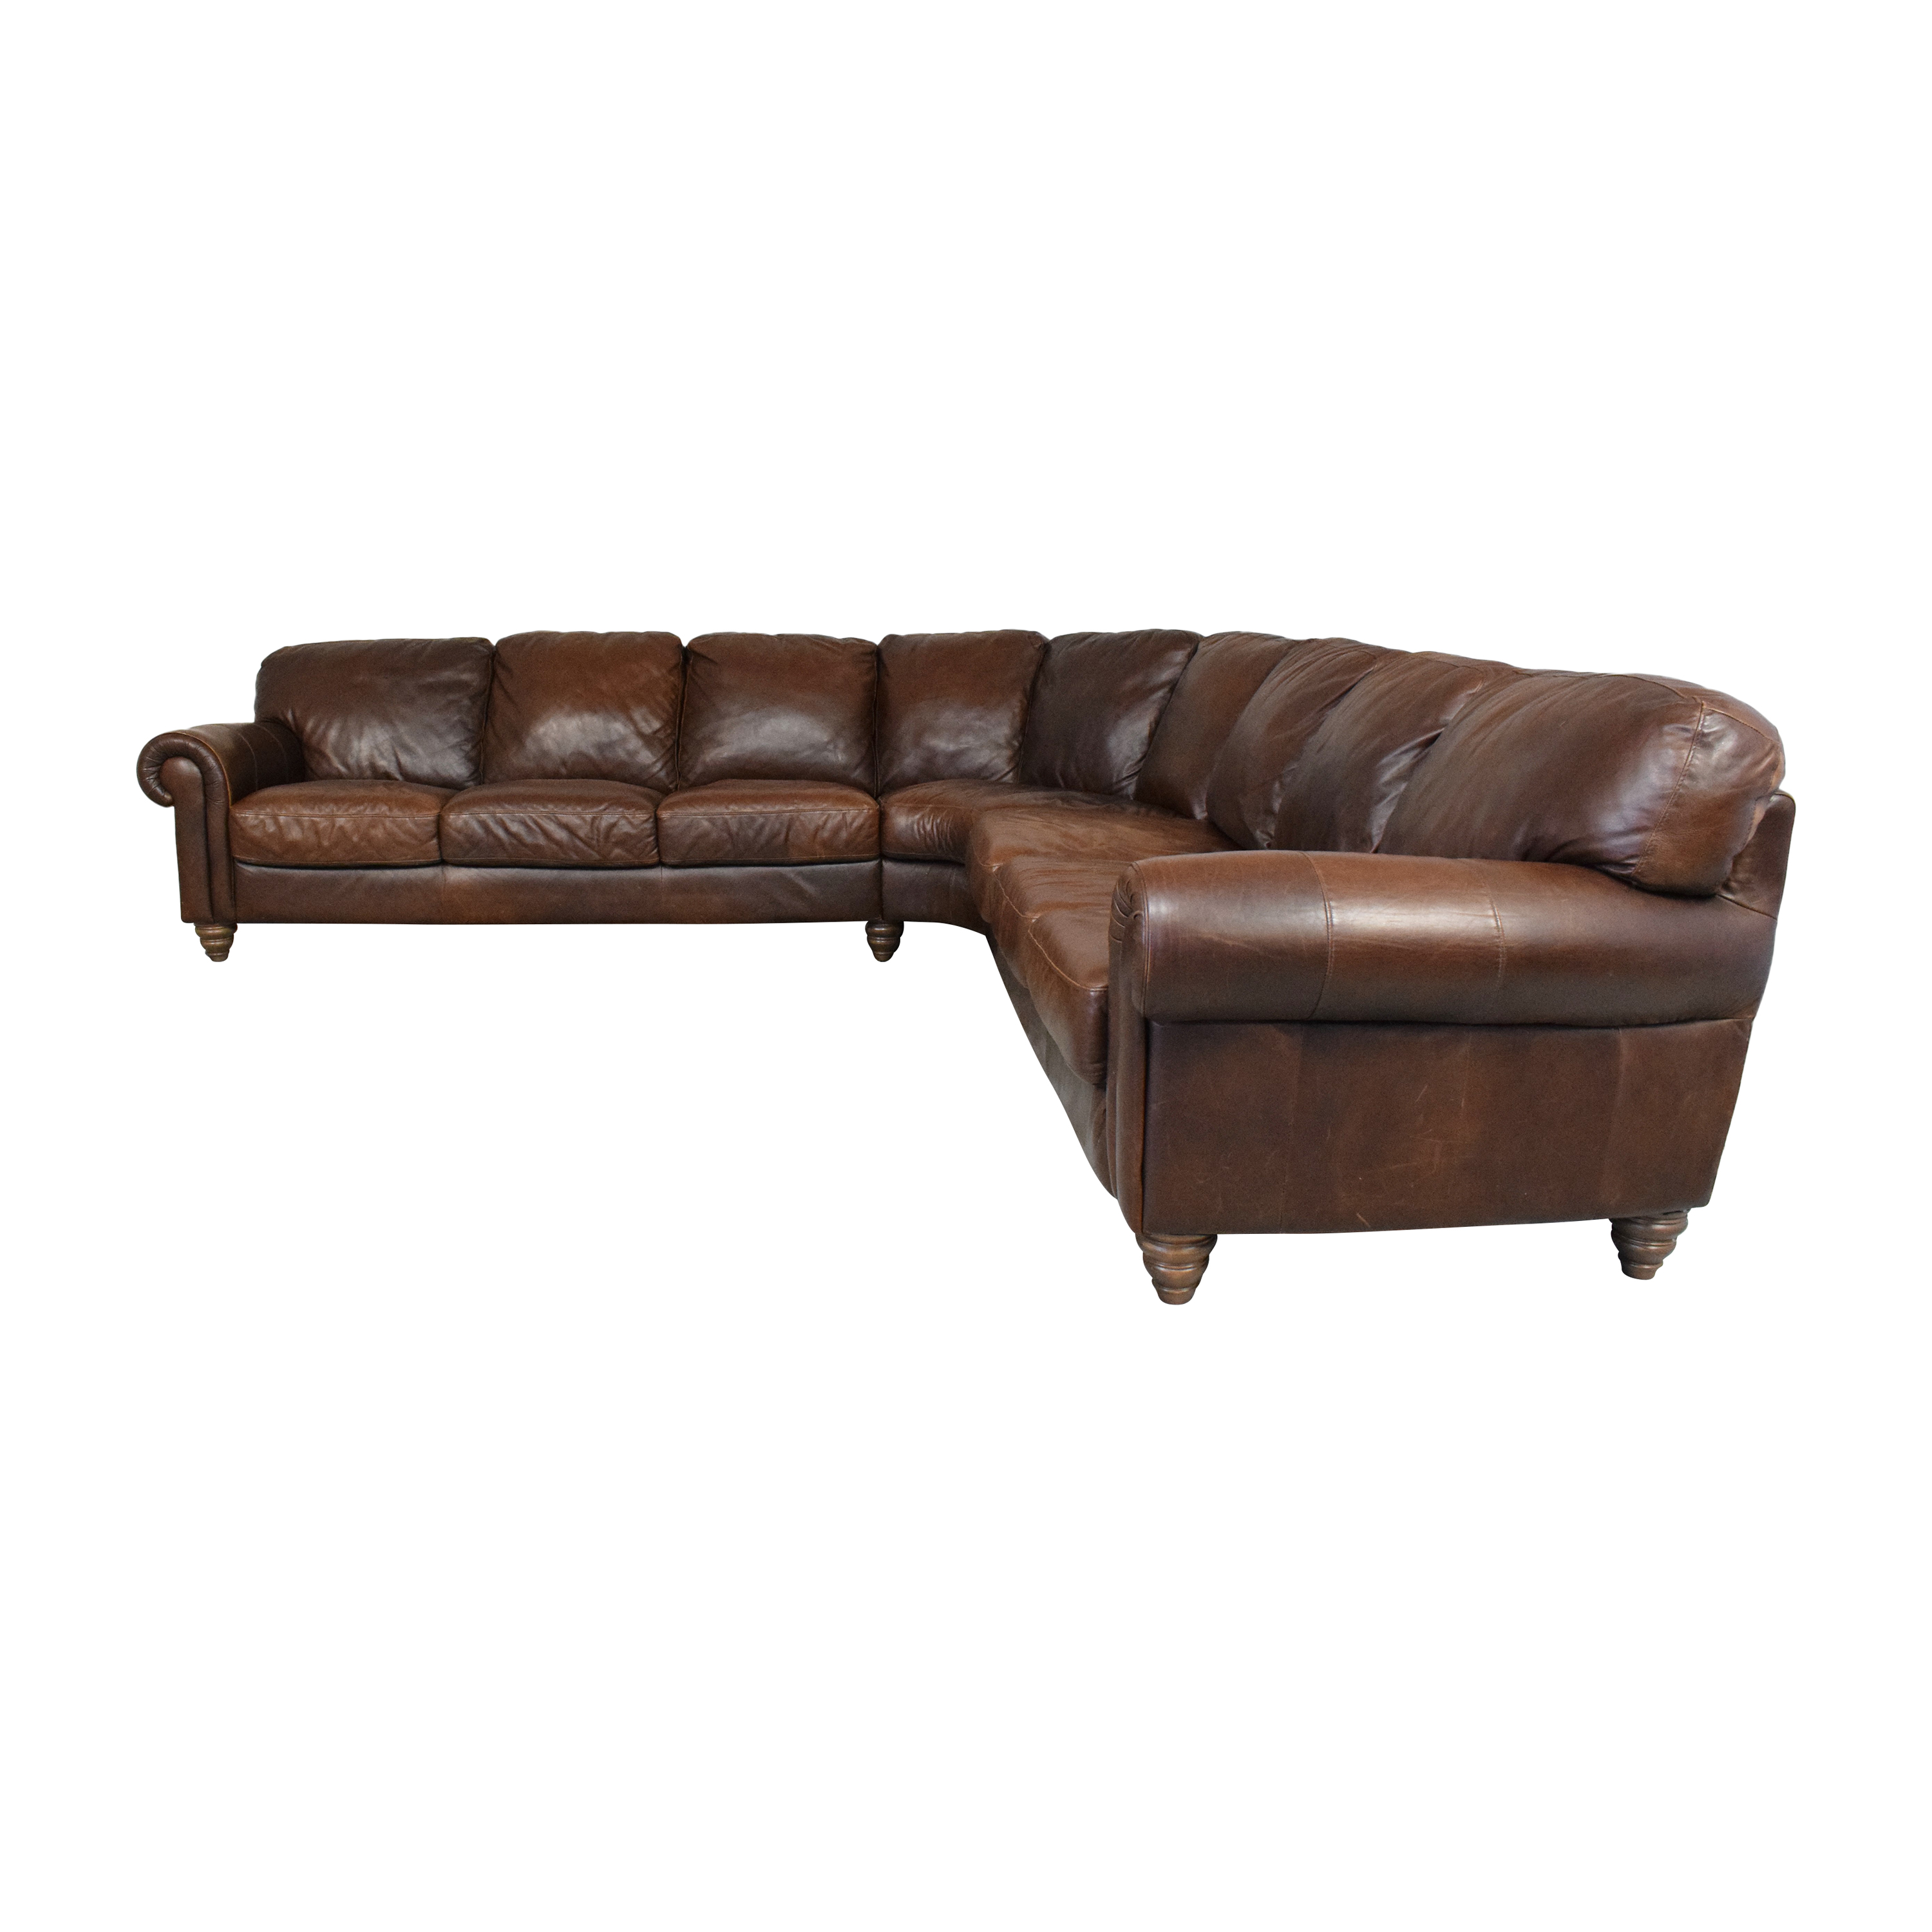 Domain Home Domain Home L Shaped Sectional Sofa for sale